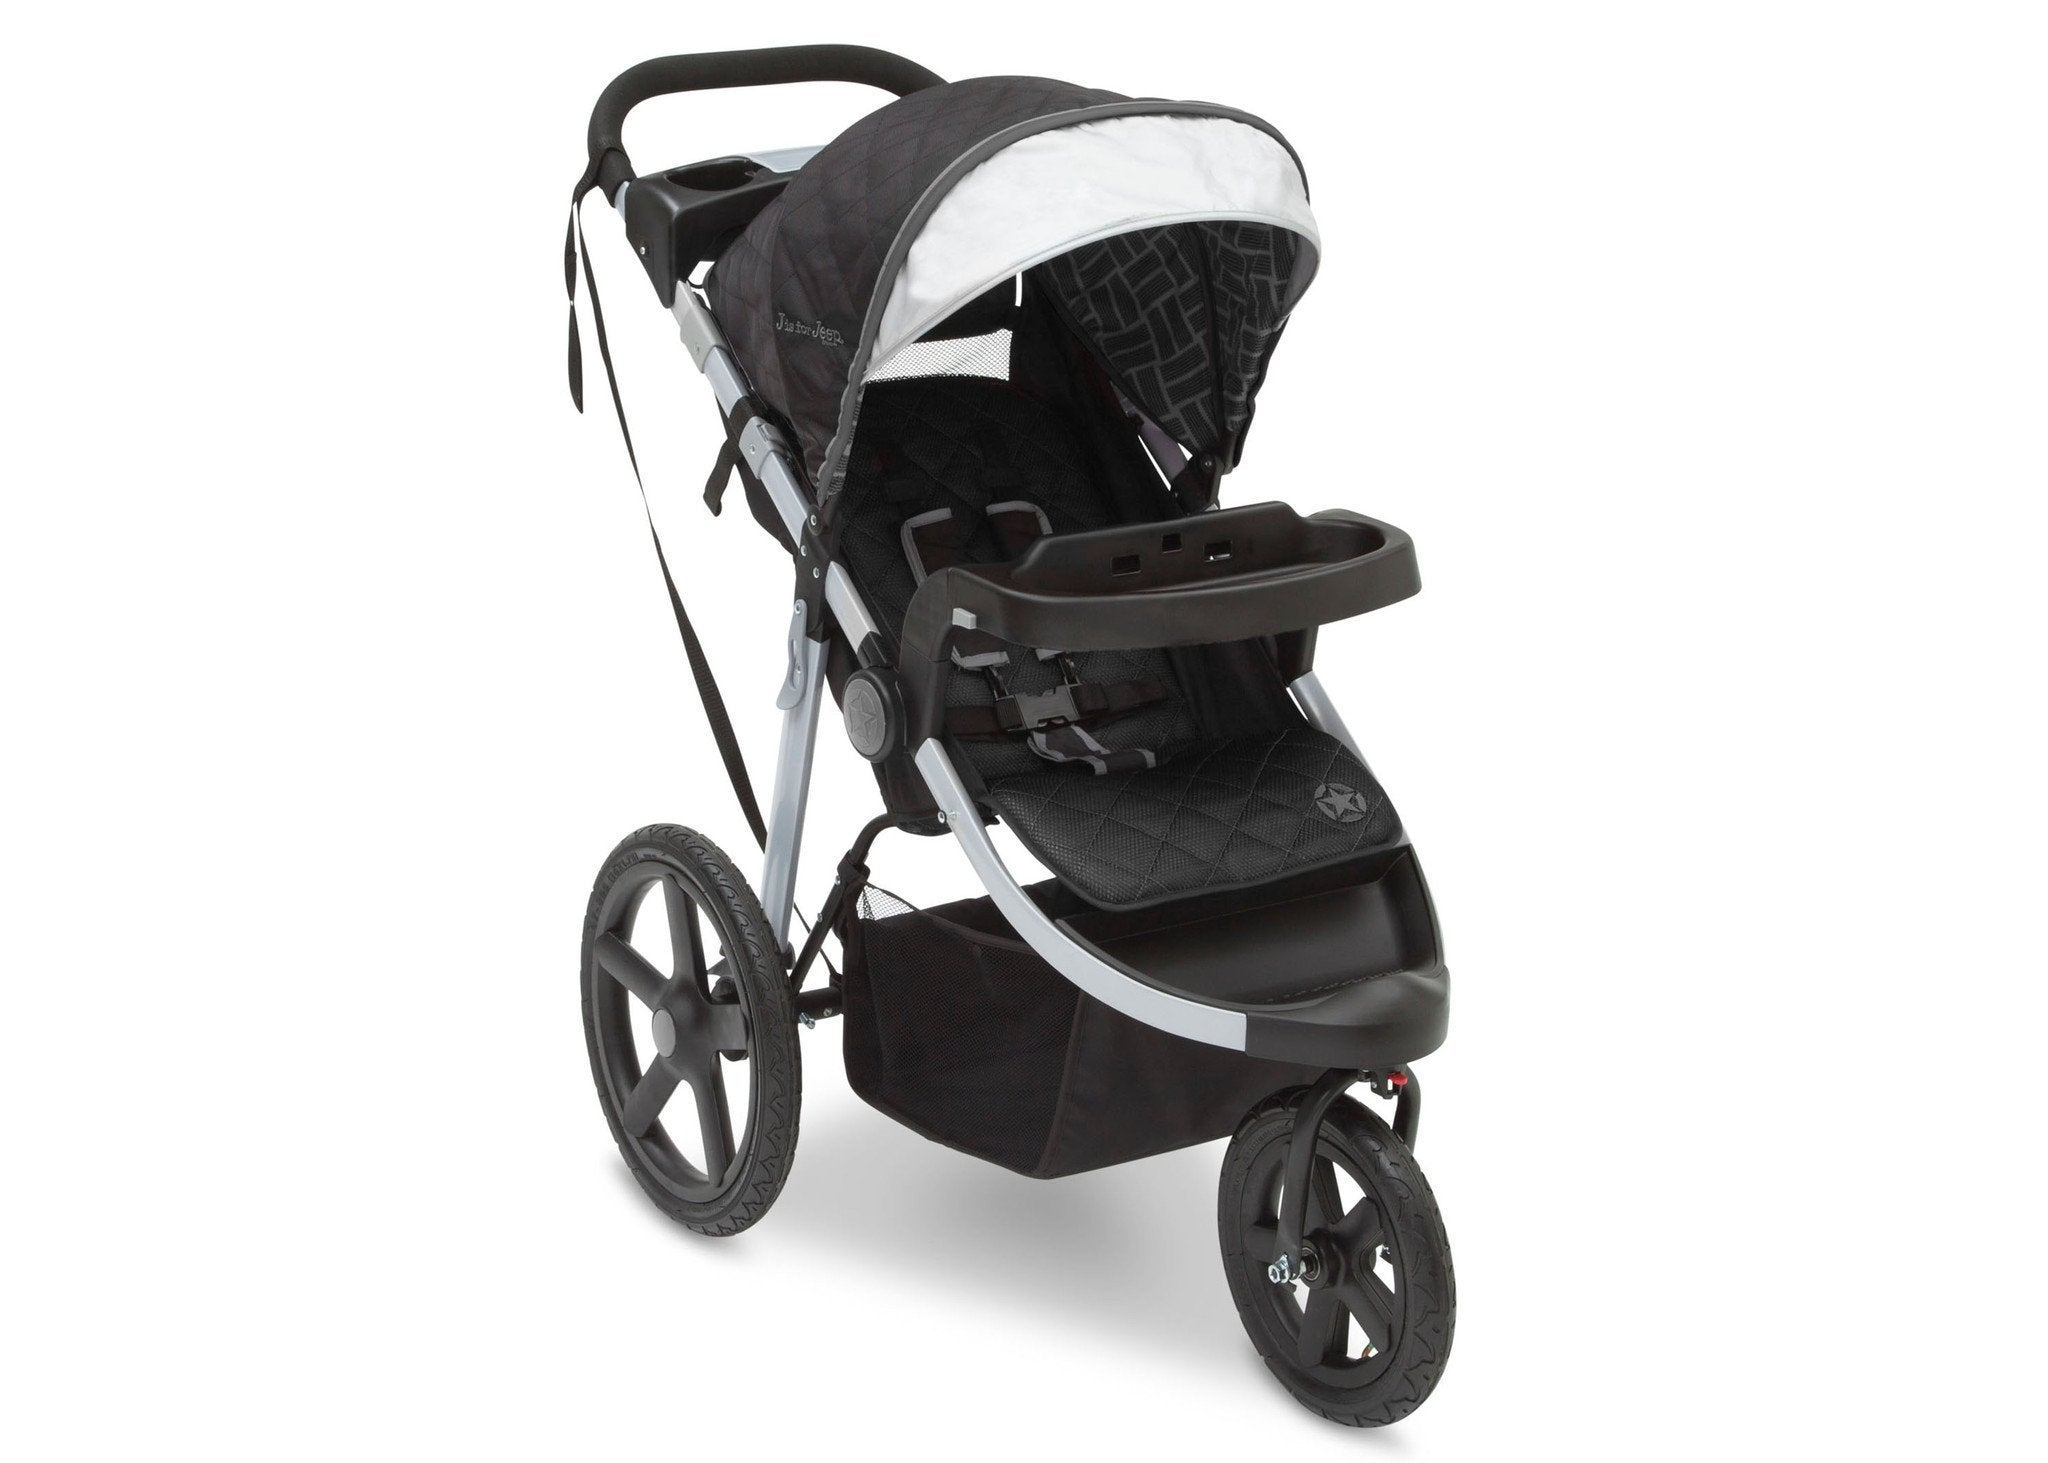 Jeep Adventure All Terrain Jogger Stroller by Delta Children, Charcoal Tracks (0251), with extendable and quilted European canopy